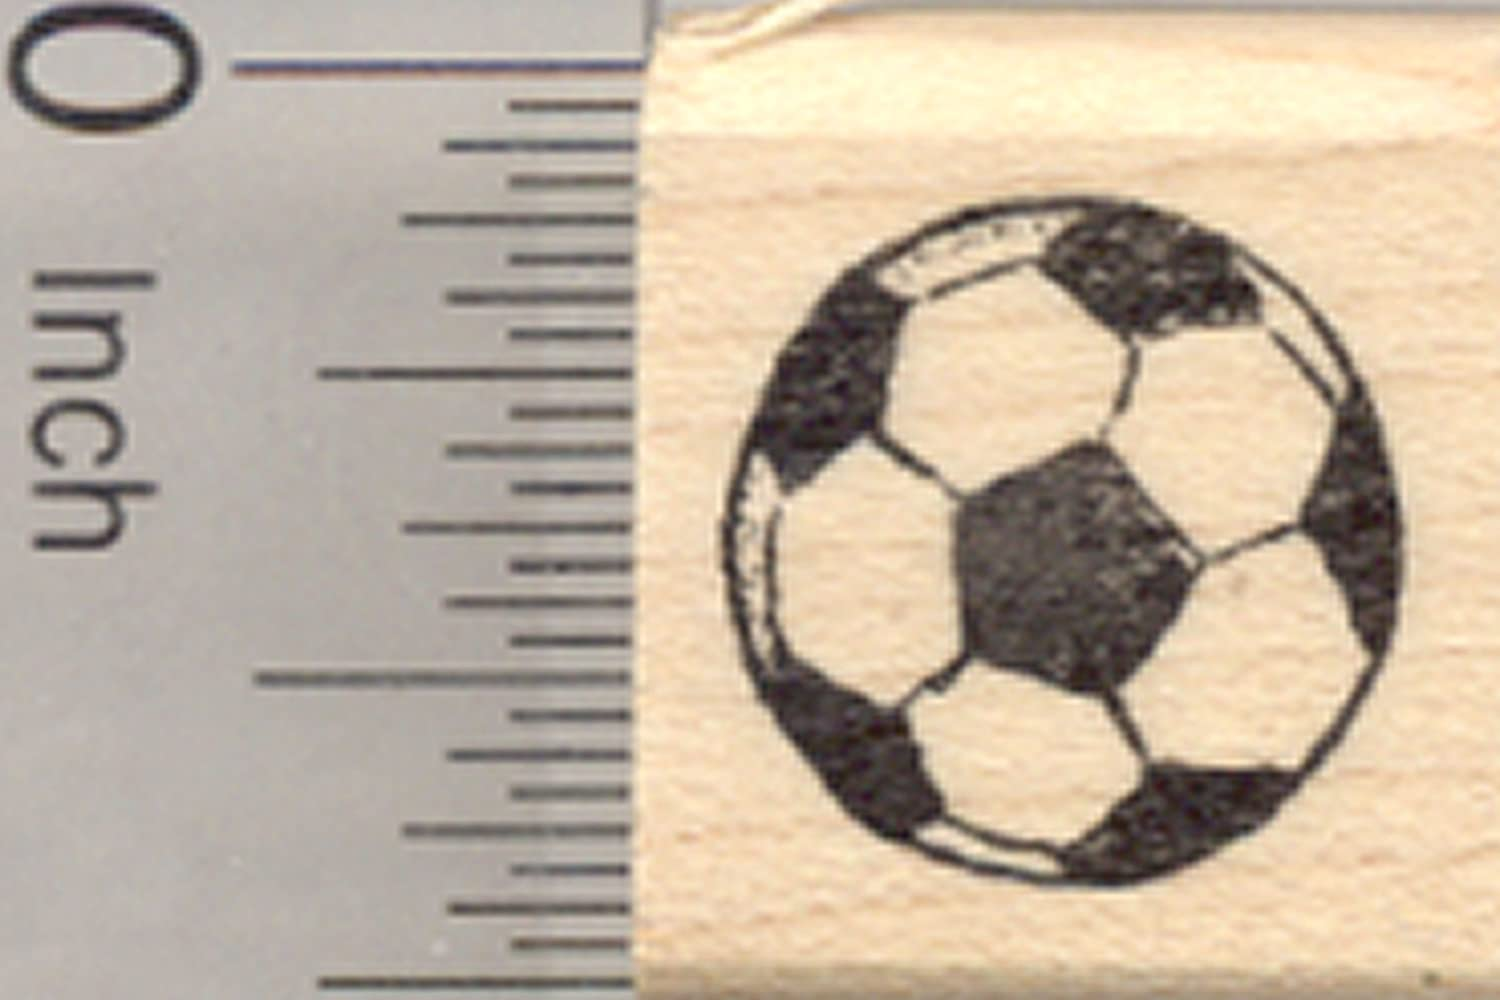 Small Soccer Ball Rubber Stamp, Association Football Rubberhedgehog Rubber Stamps A29103